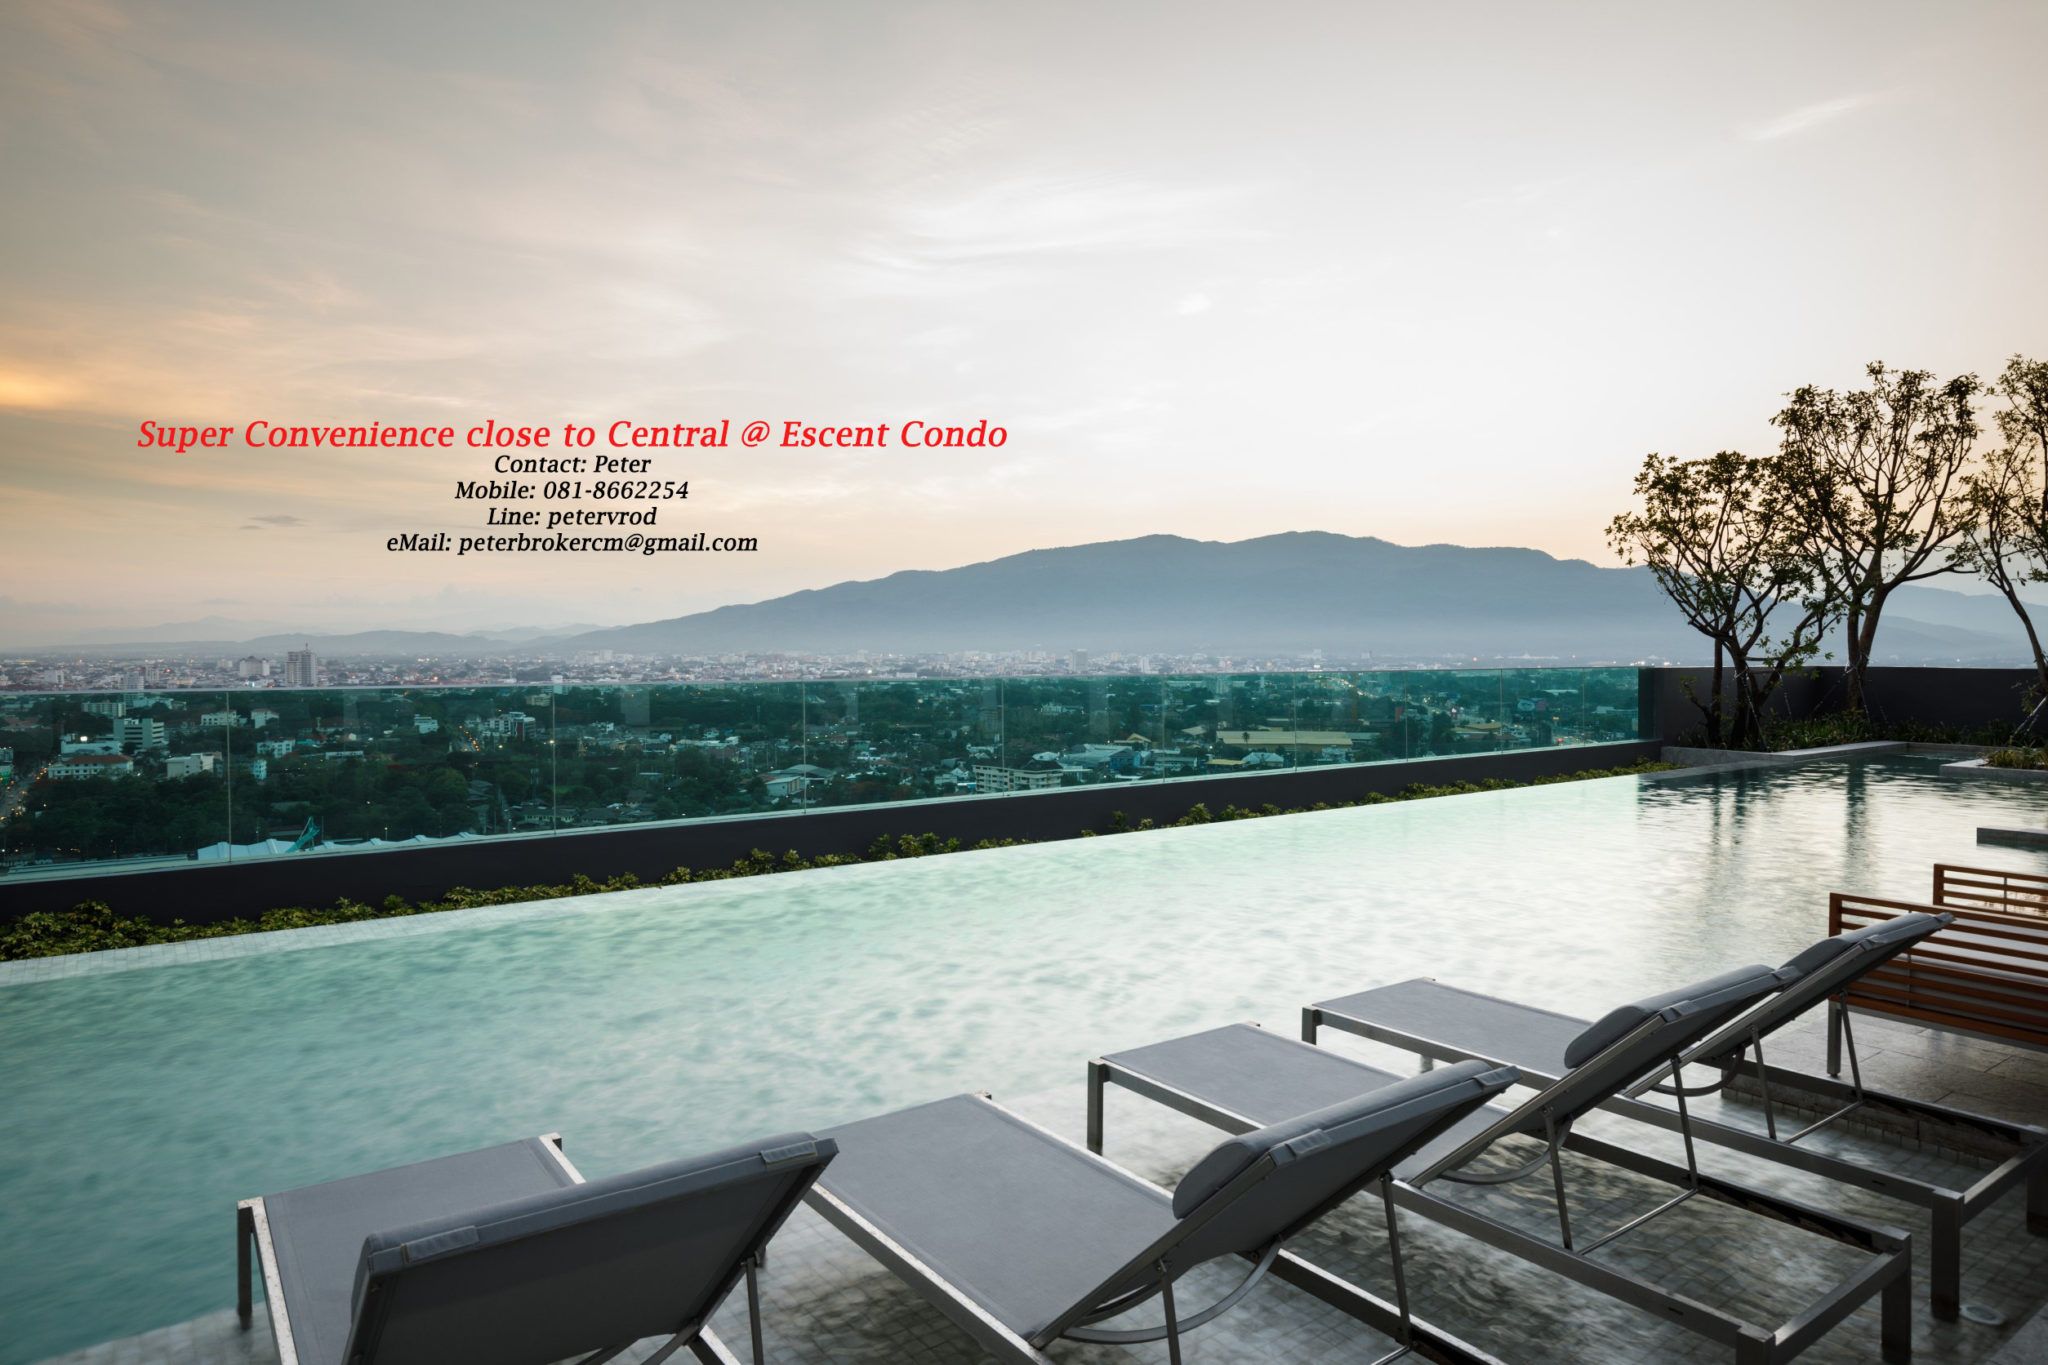 Sale Escent Condo Chiang mai CPN 24 Sqm 16th floor 1